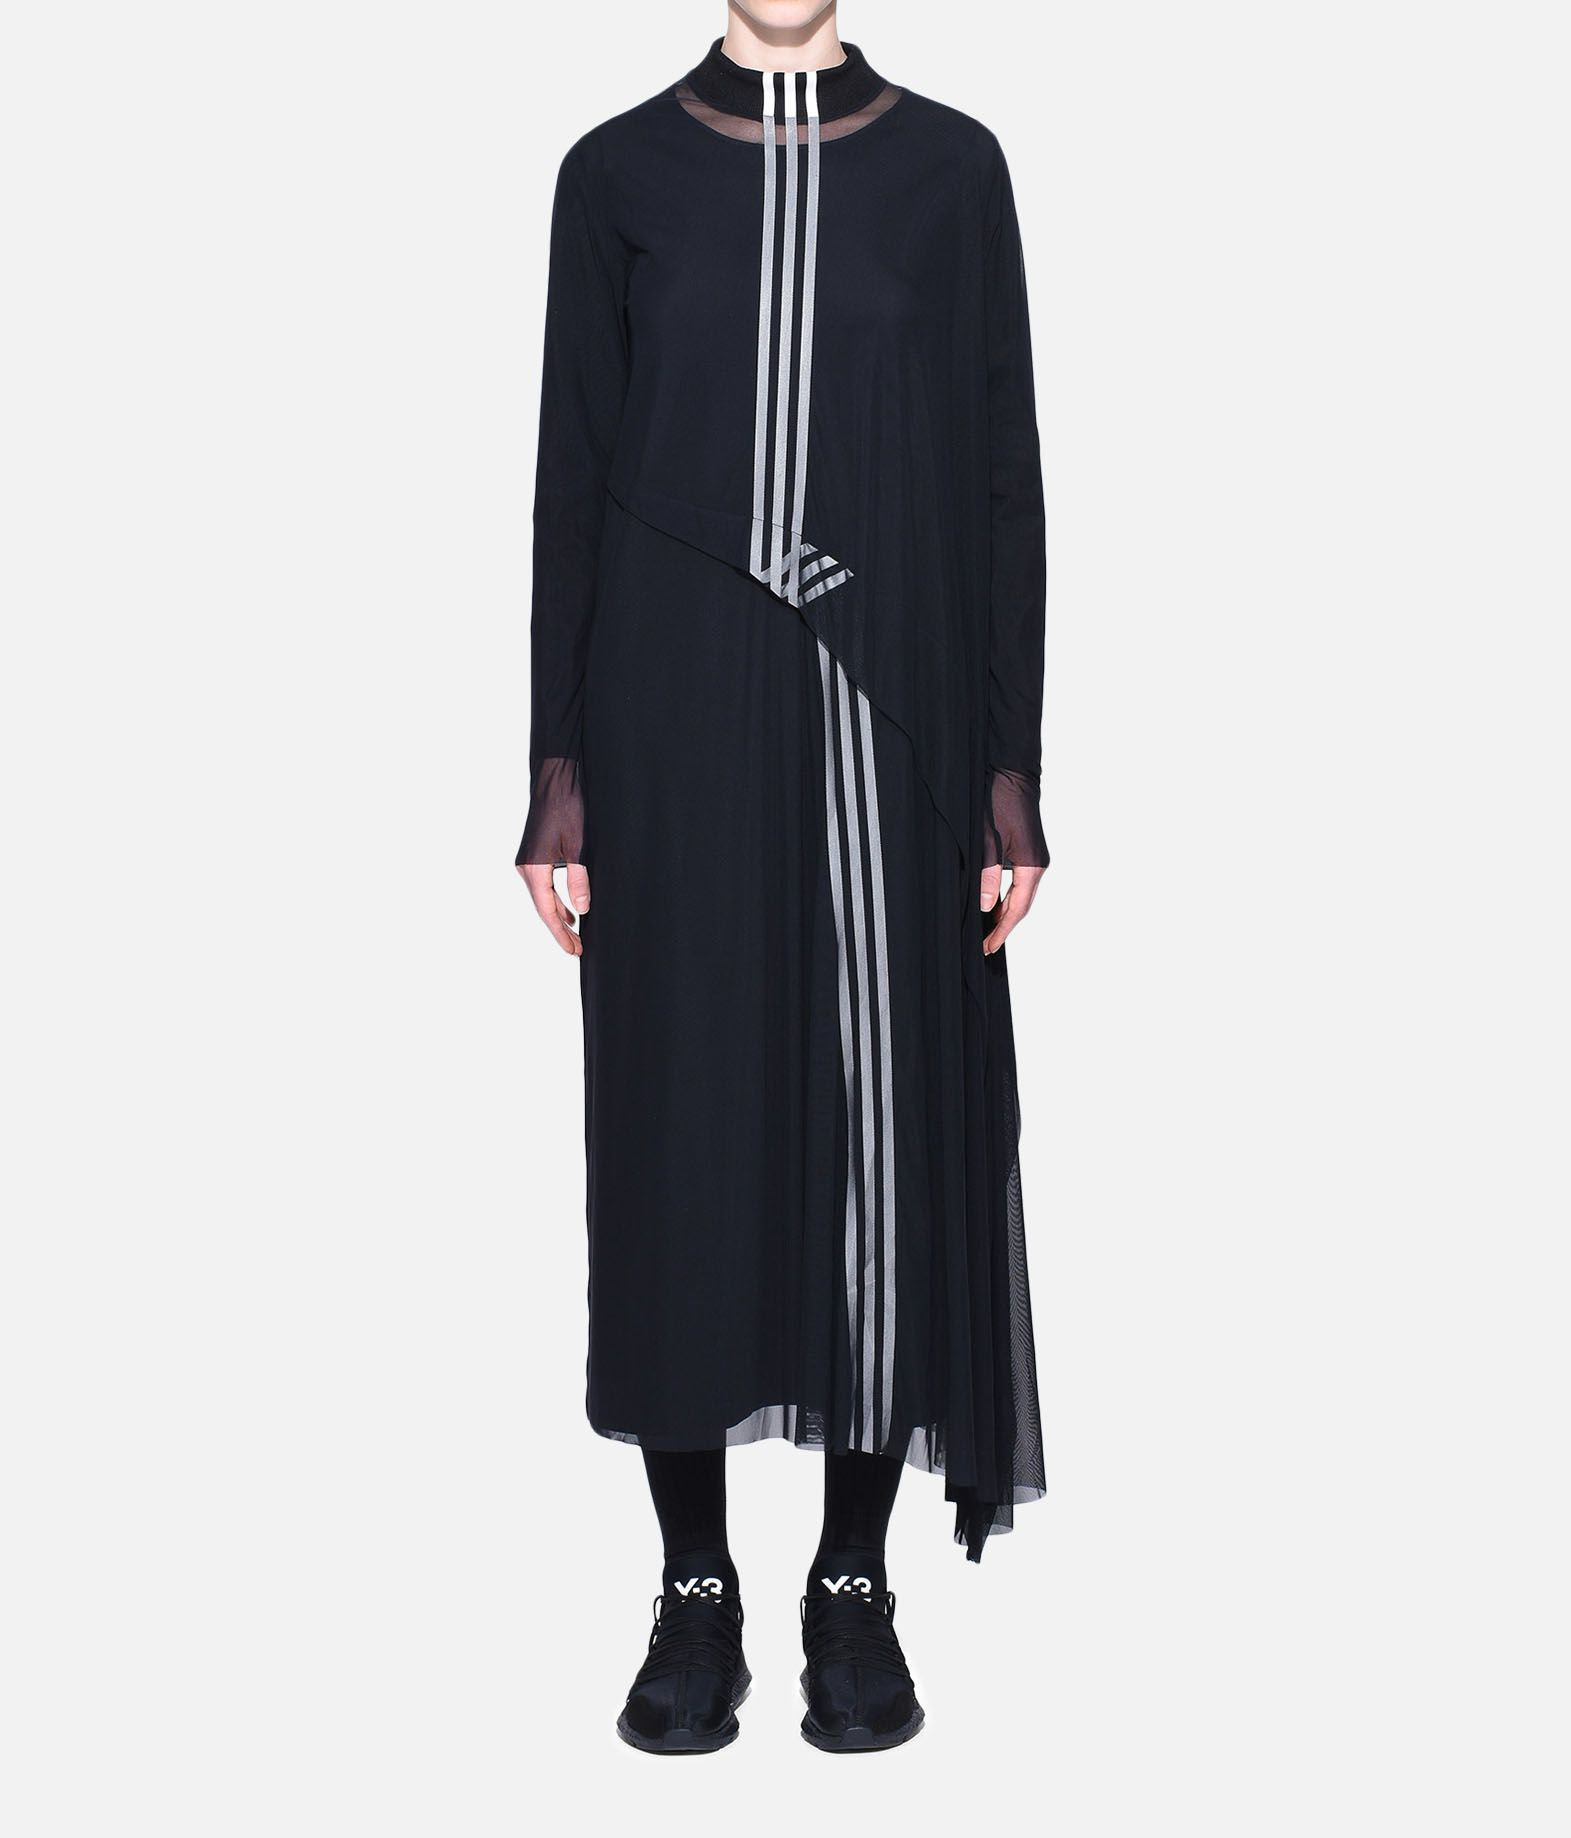 Y-3 Y-3 3-Stripes Mesh Dress Vestito lungo Donna r